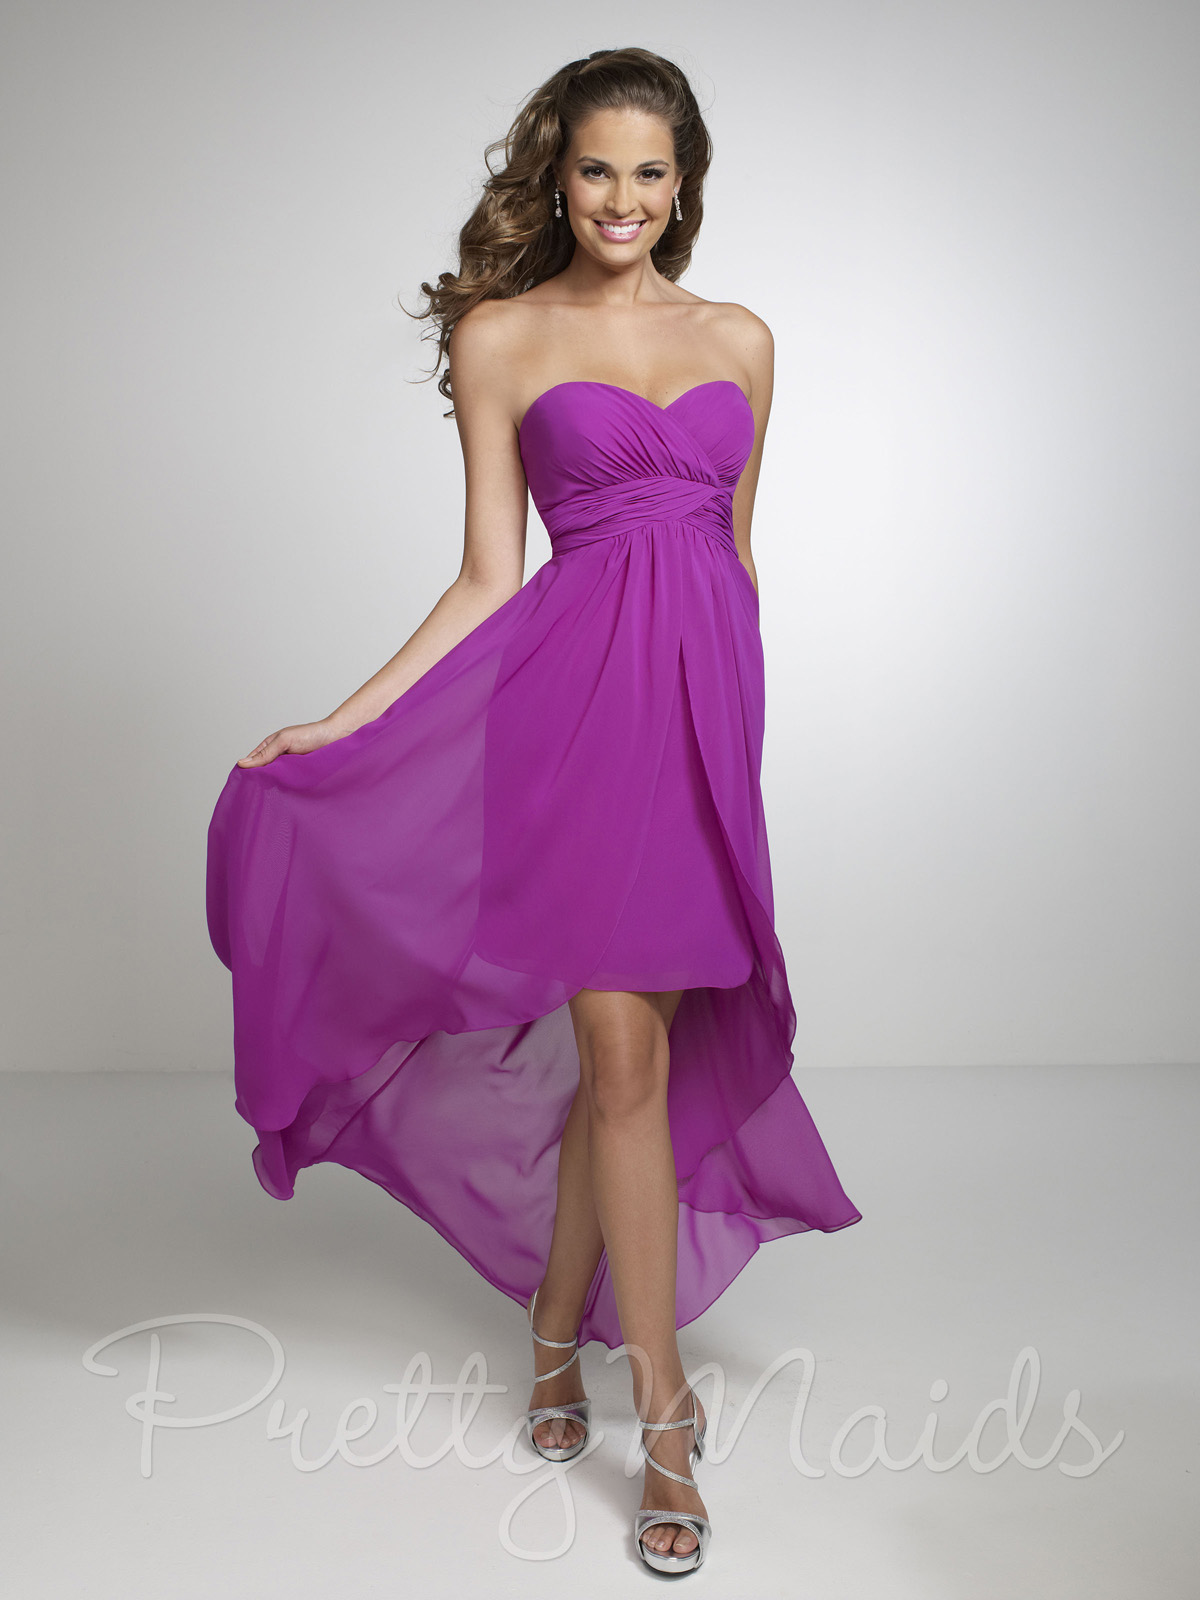 Sweetheart Short Bridesmaid Dress Pretty Maids 22531|DimitraDesigns.com